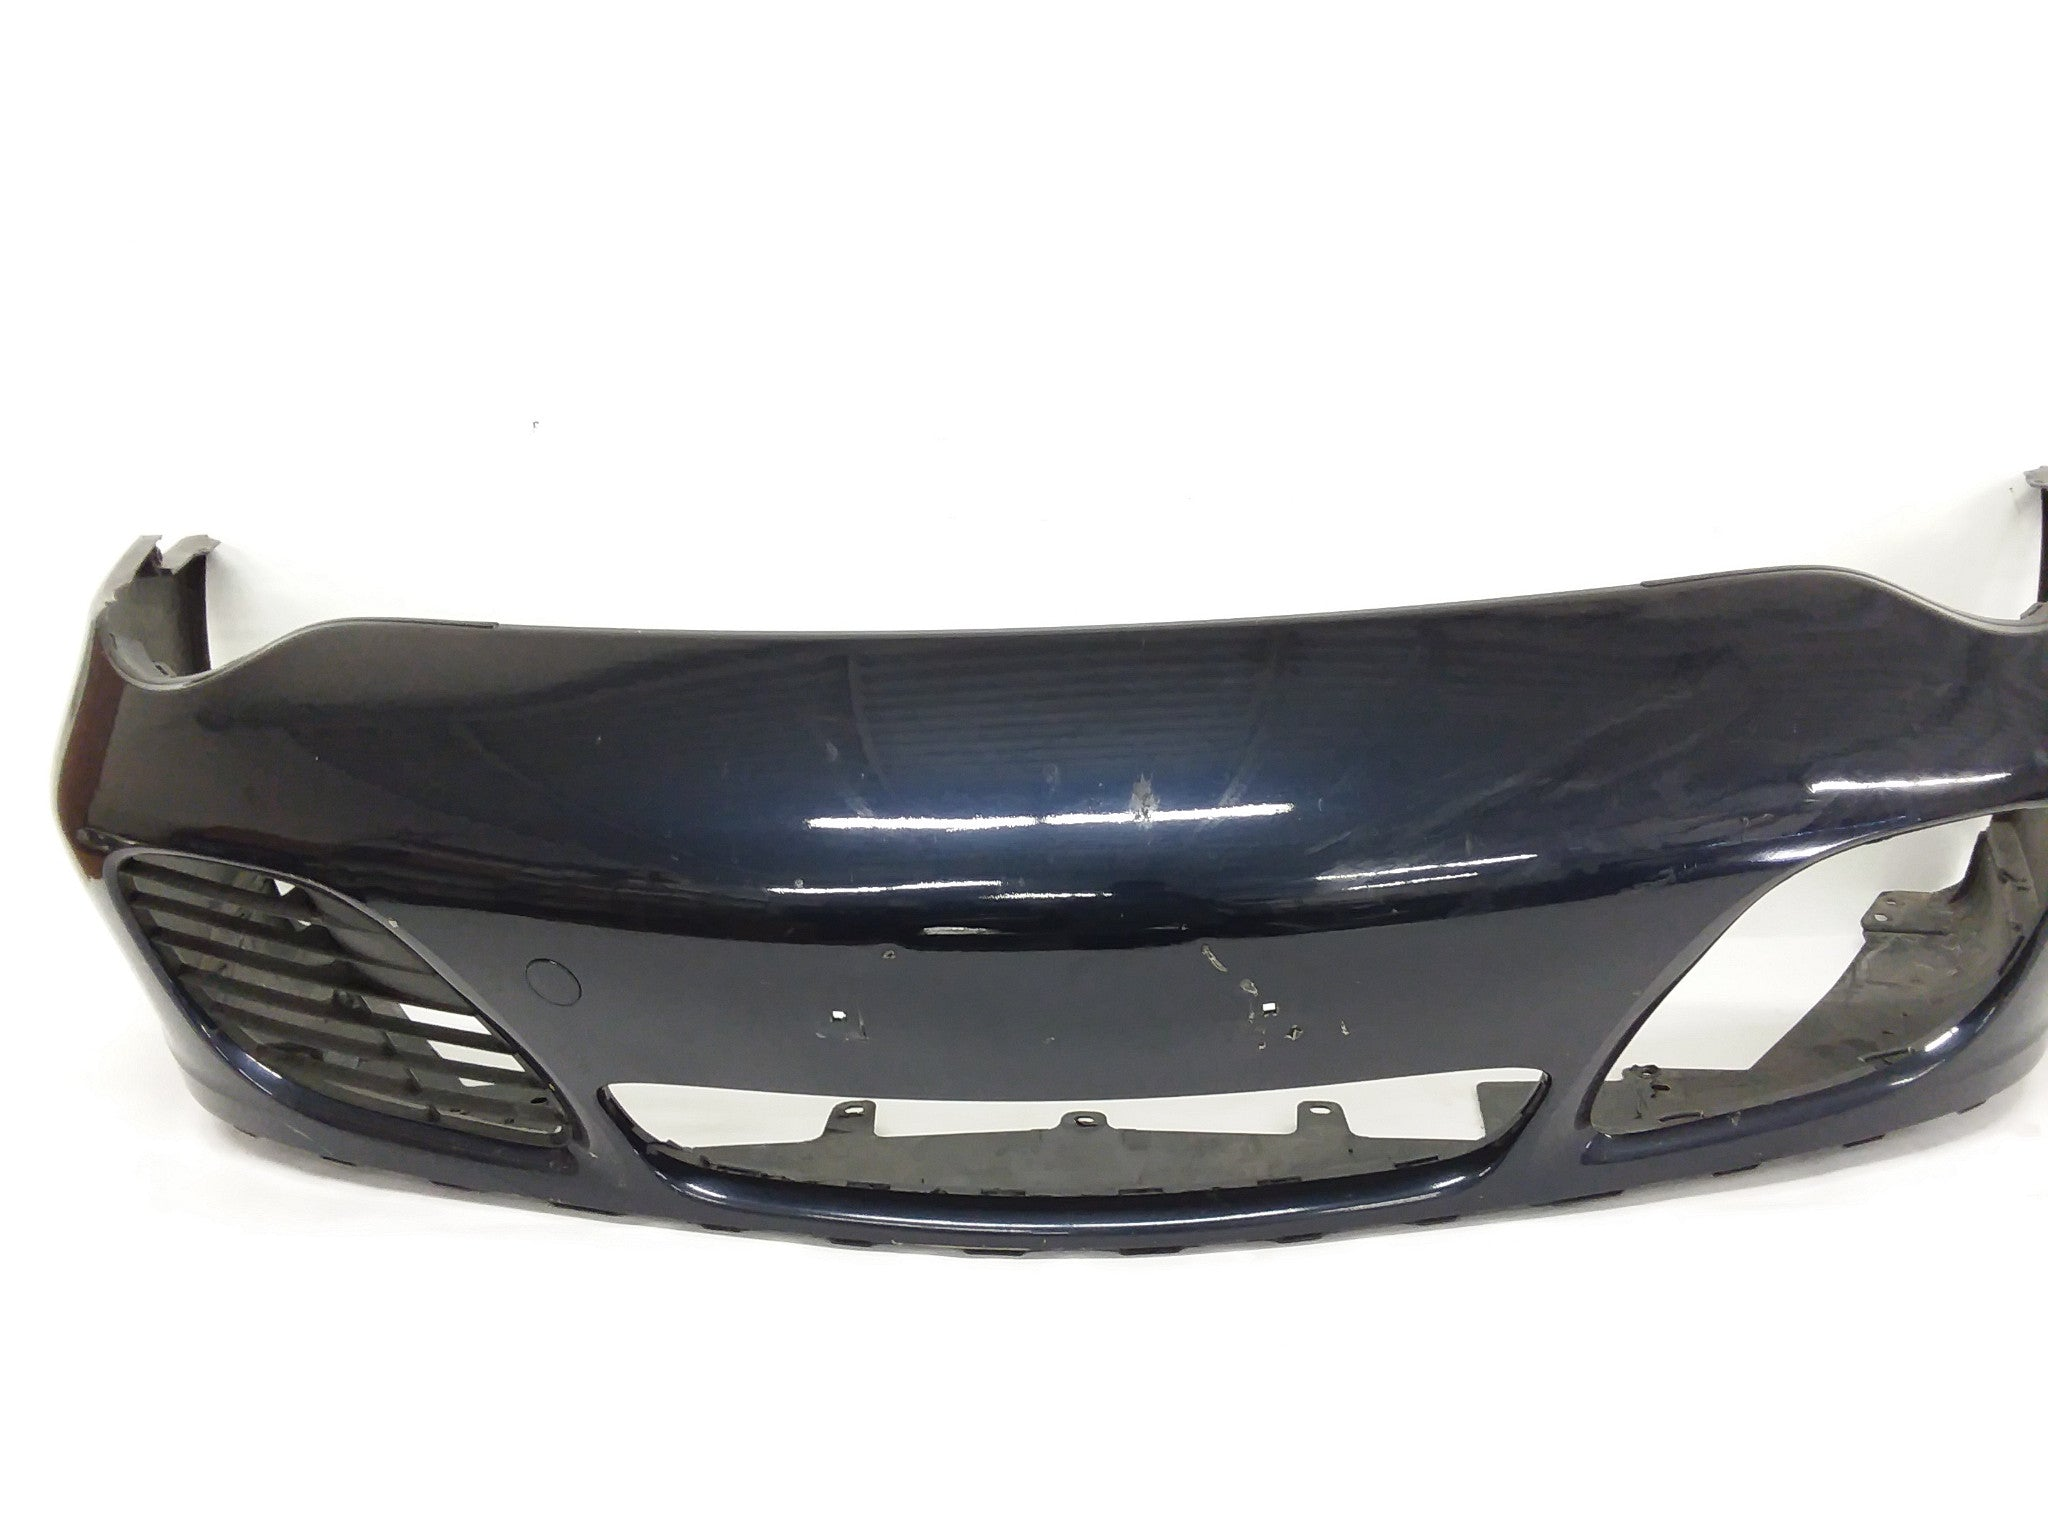 2001 2002 2003 2004 2005 Porsche 911 4S Turbo Front Bumper 99650531105 Blue OEM - Click Receive Auto Parts